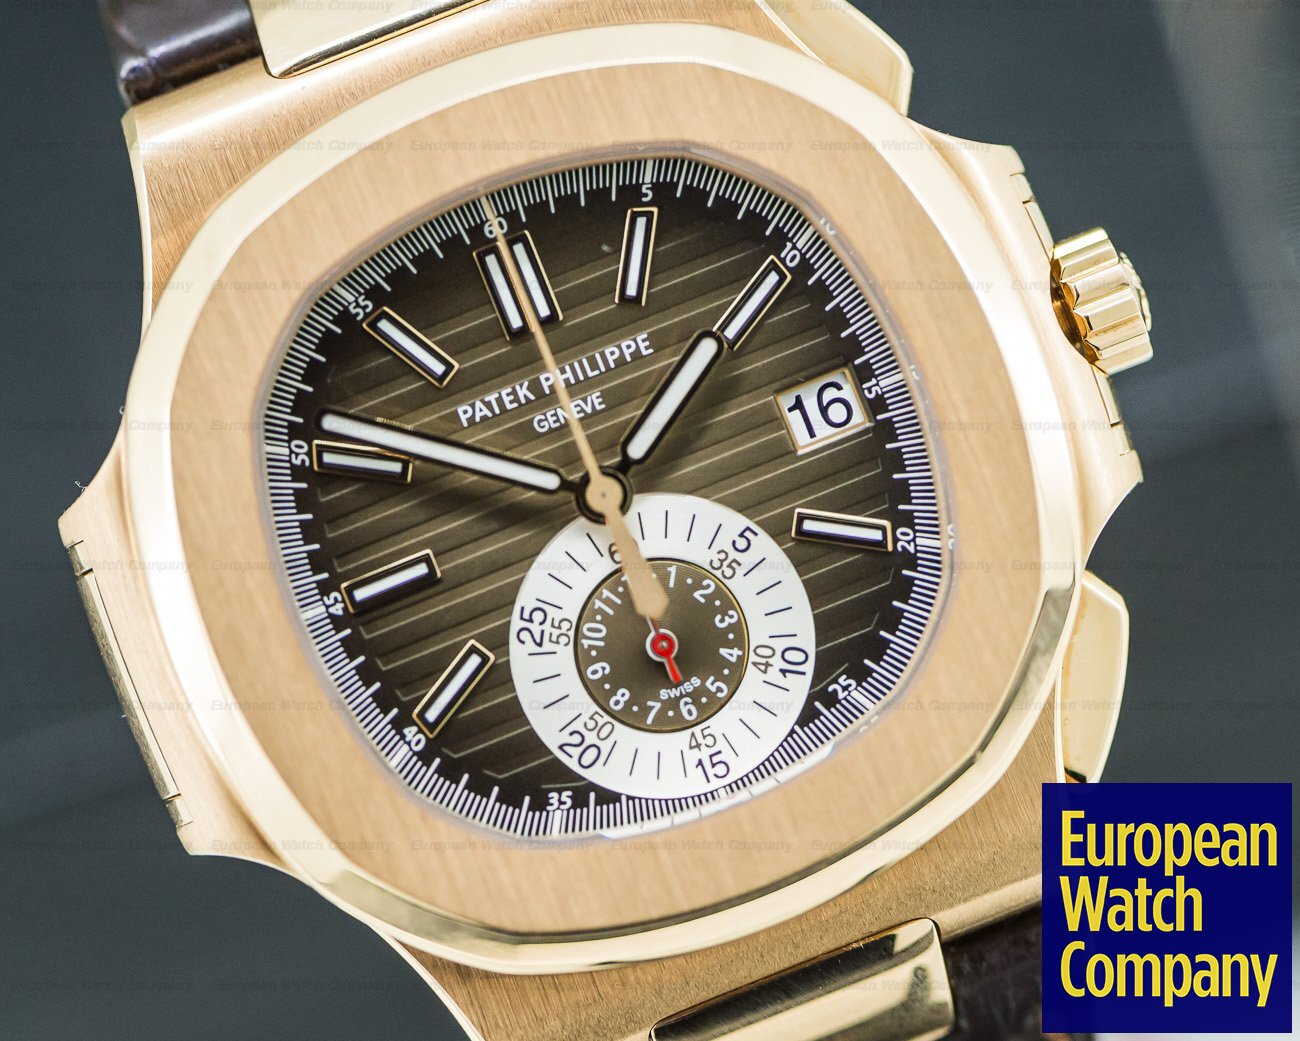 Patek Philippe 5980R-001 Nautilus Chronograph 18K Rose Gold / Brown Alligator